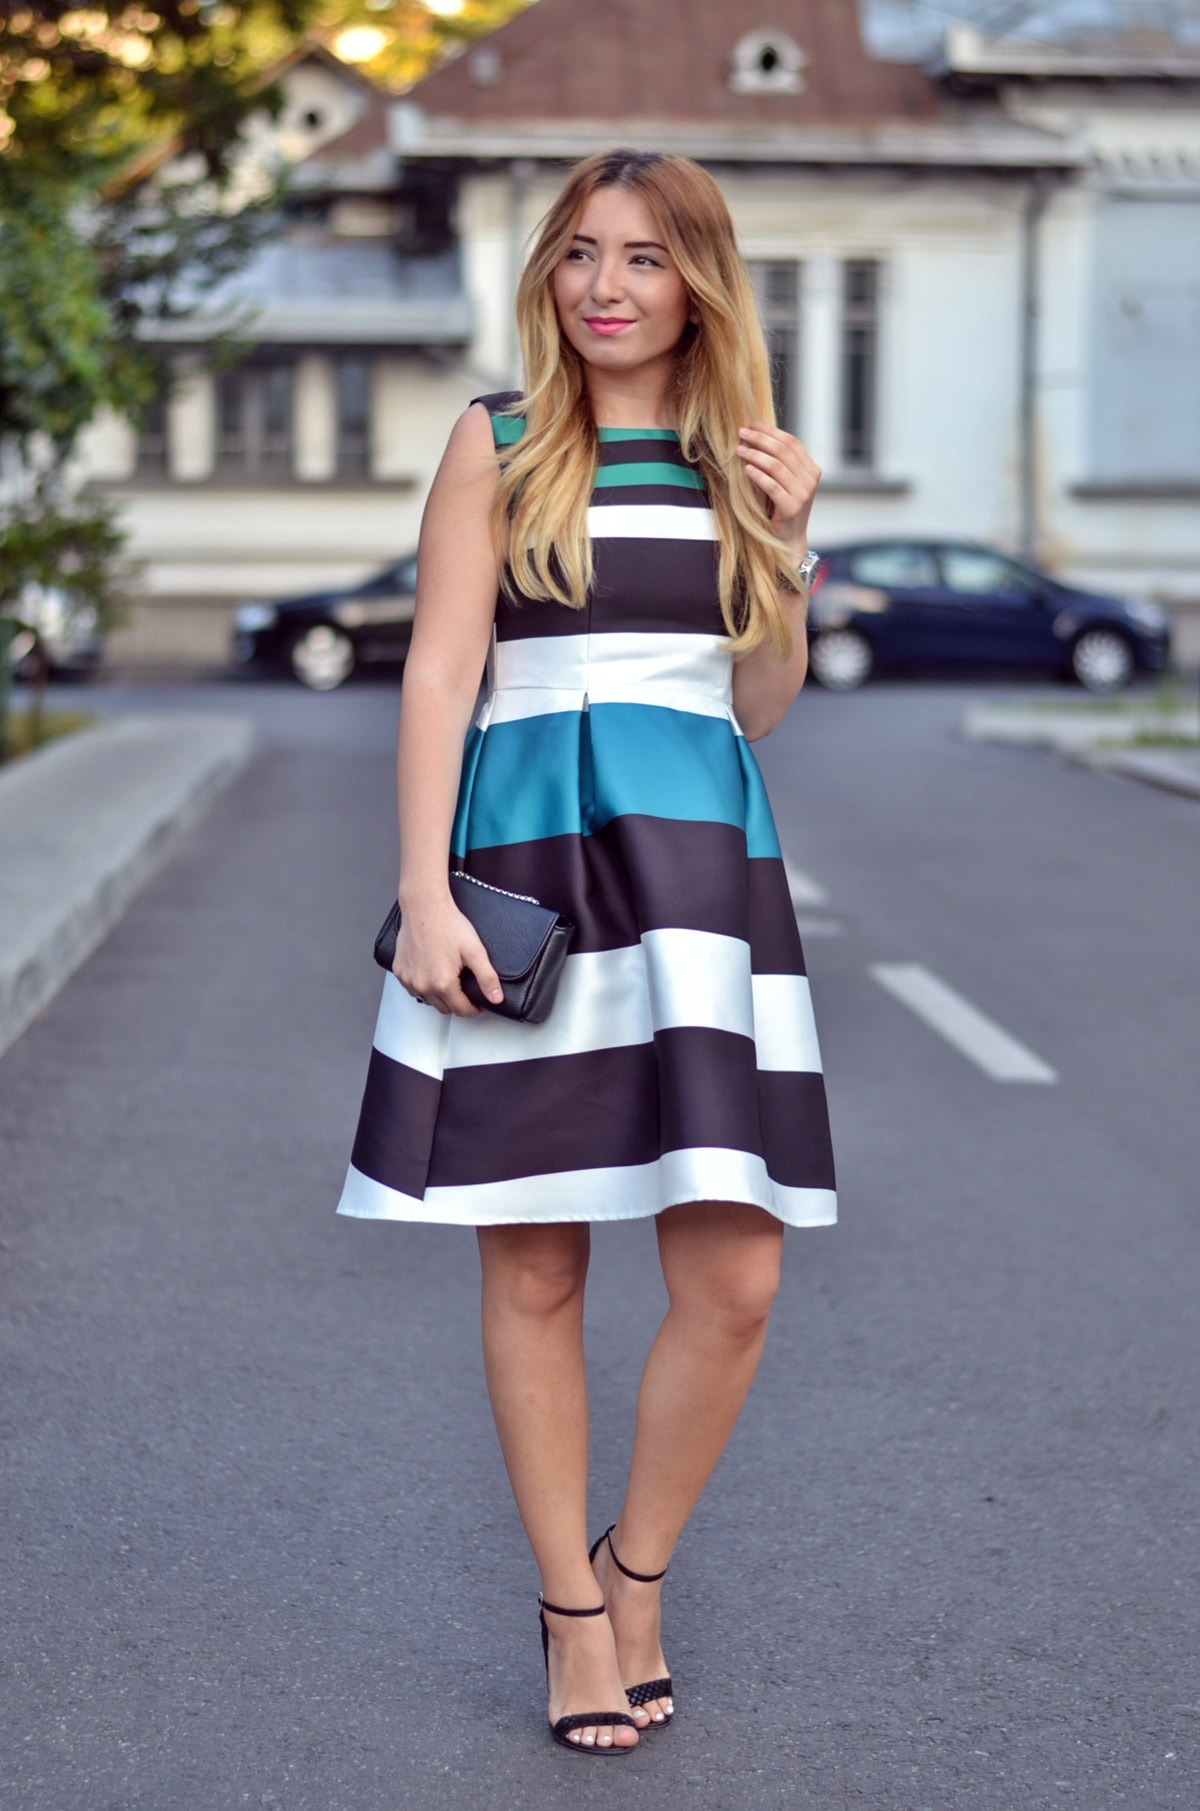 Street style: multicolor striped dress, SheIn, andreea ristea, white, black, green, black sandals, summer look